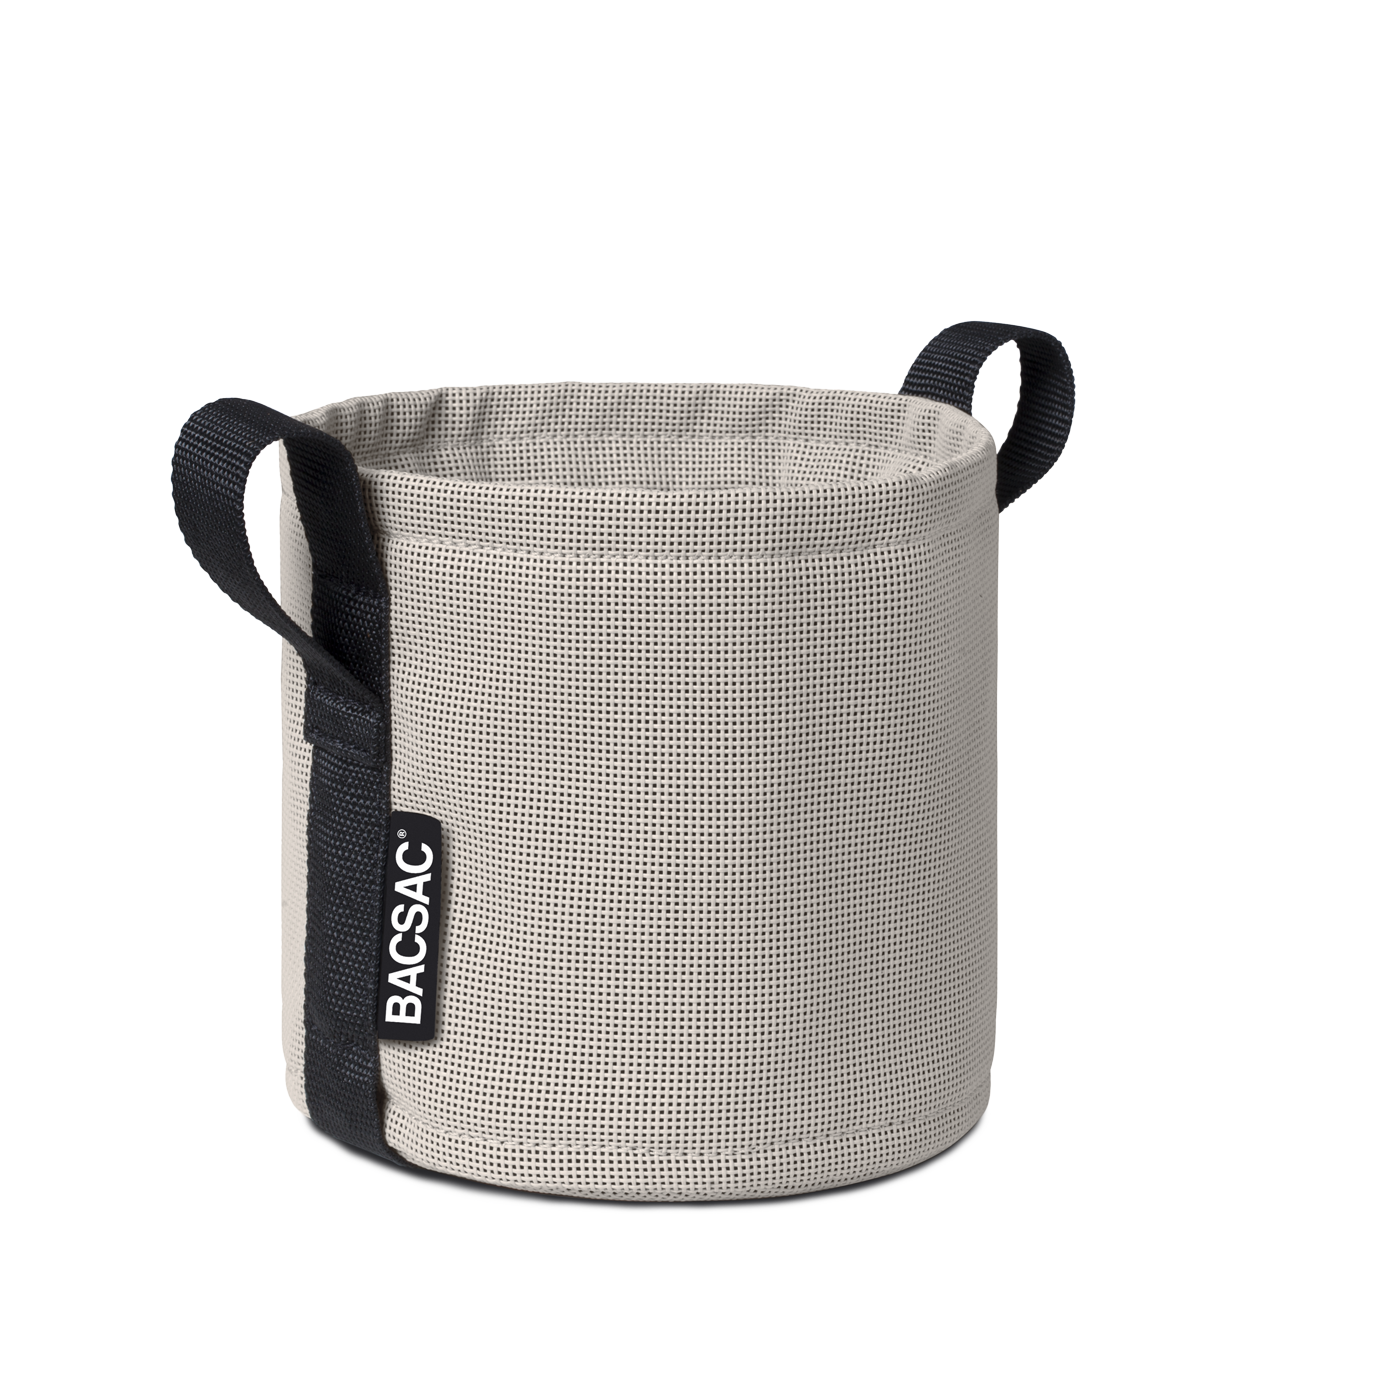 Bacsquare 4 kitchen garden (140L) Taupe